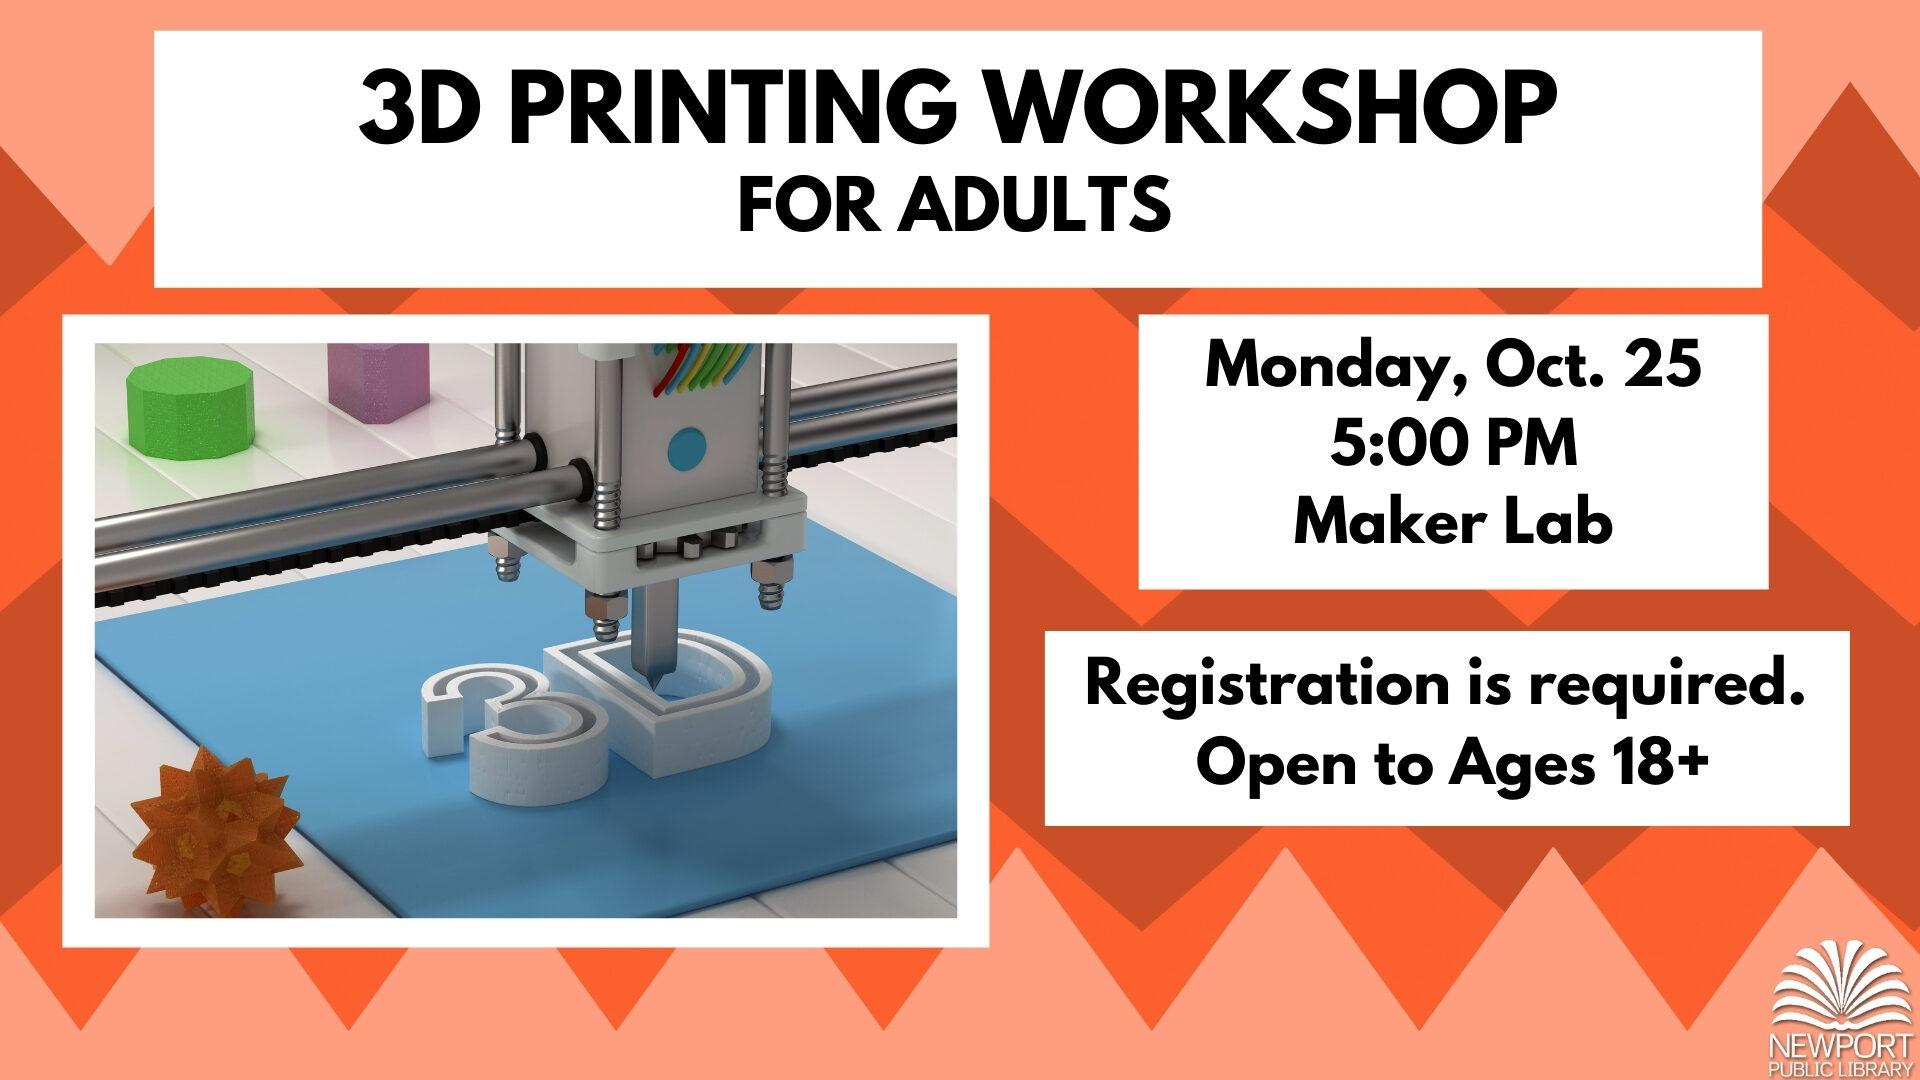 3D Printing Workshop for Adults